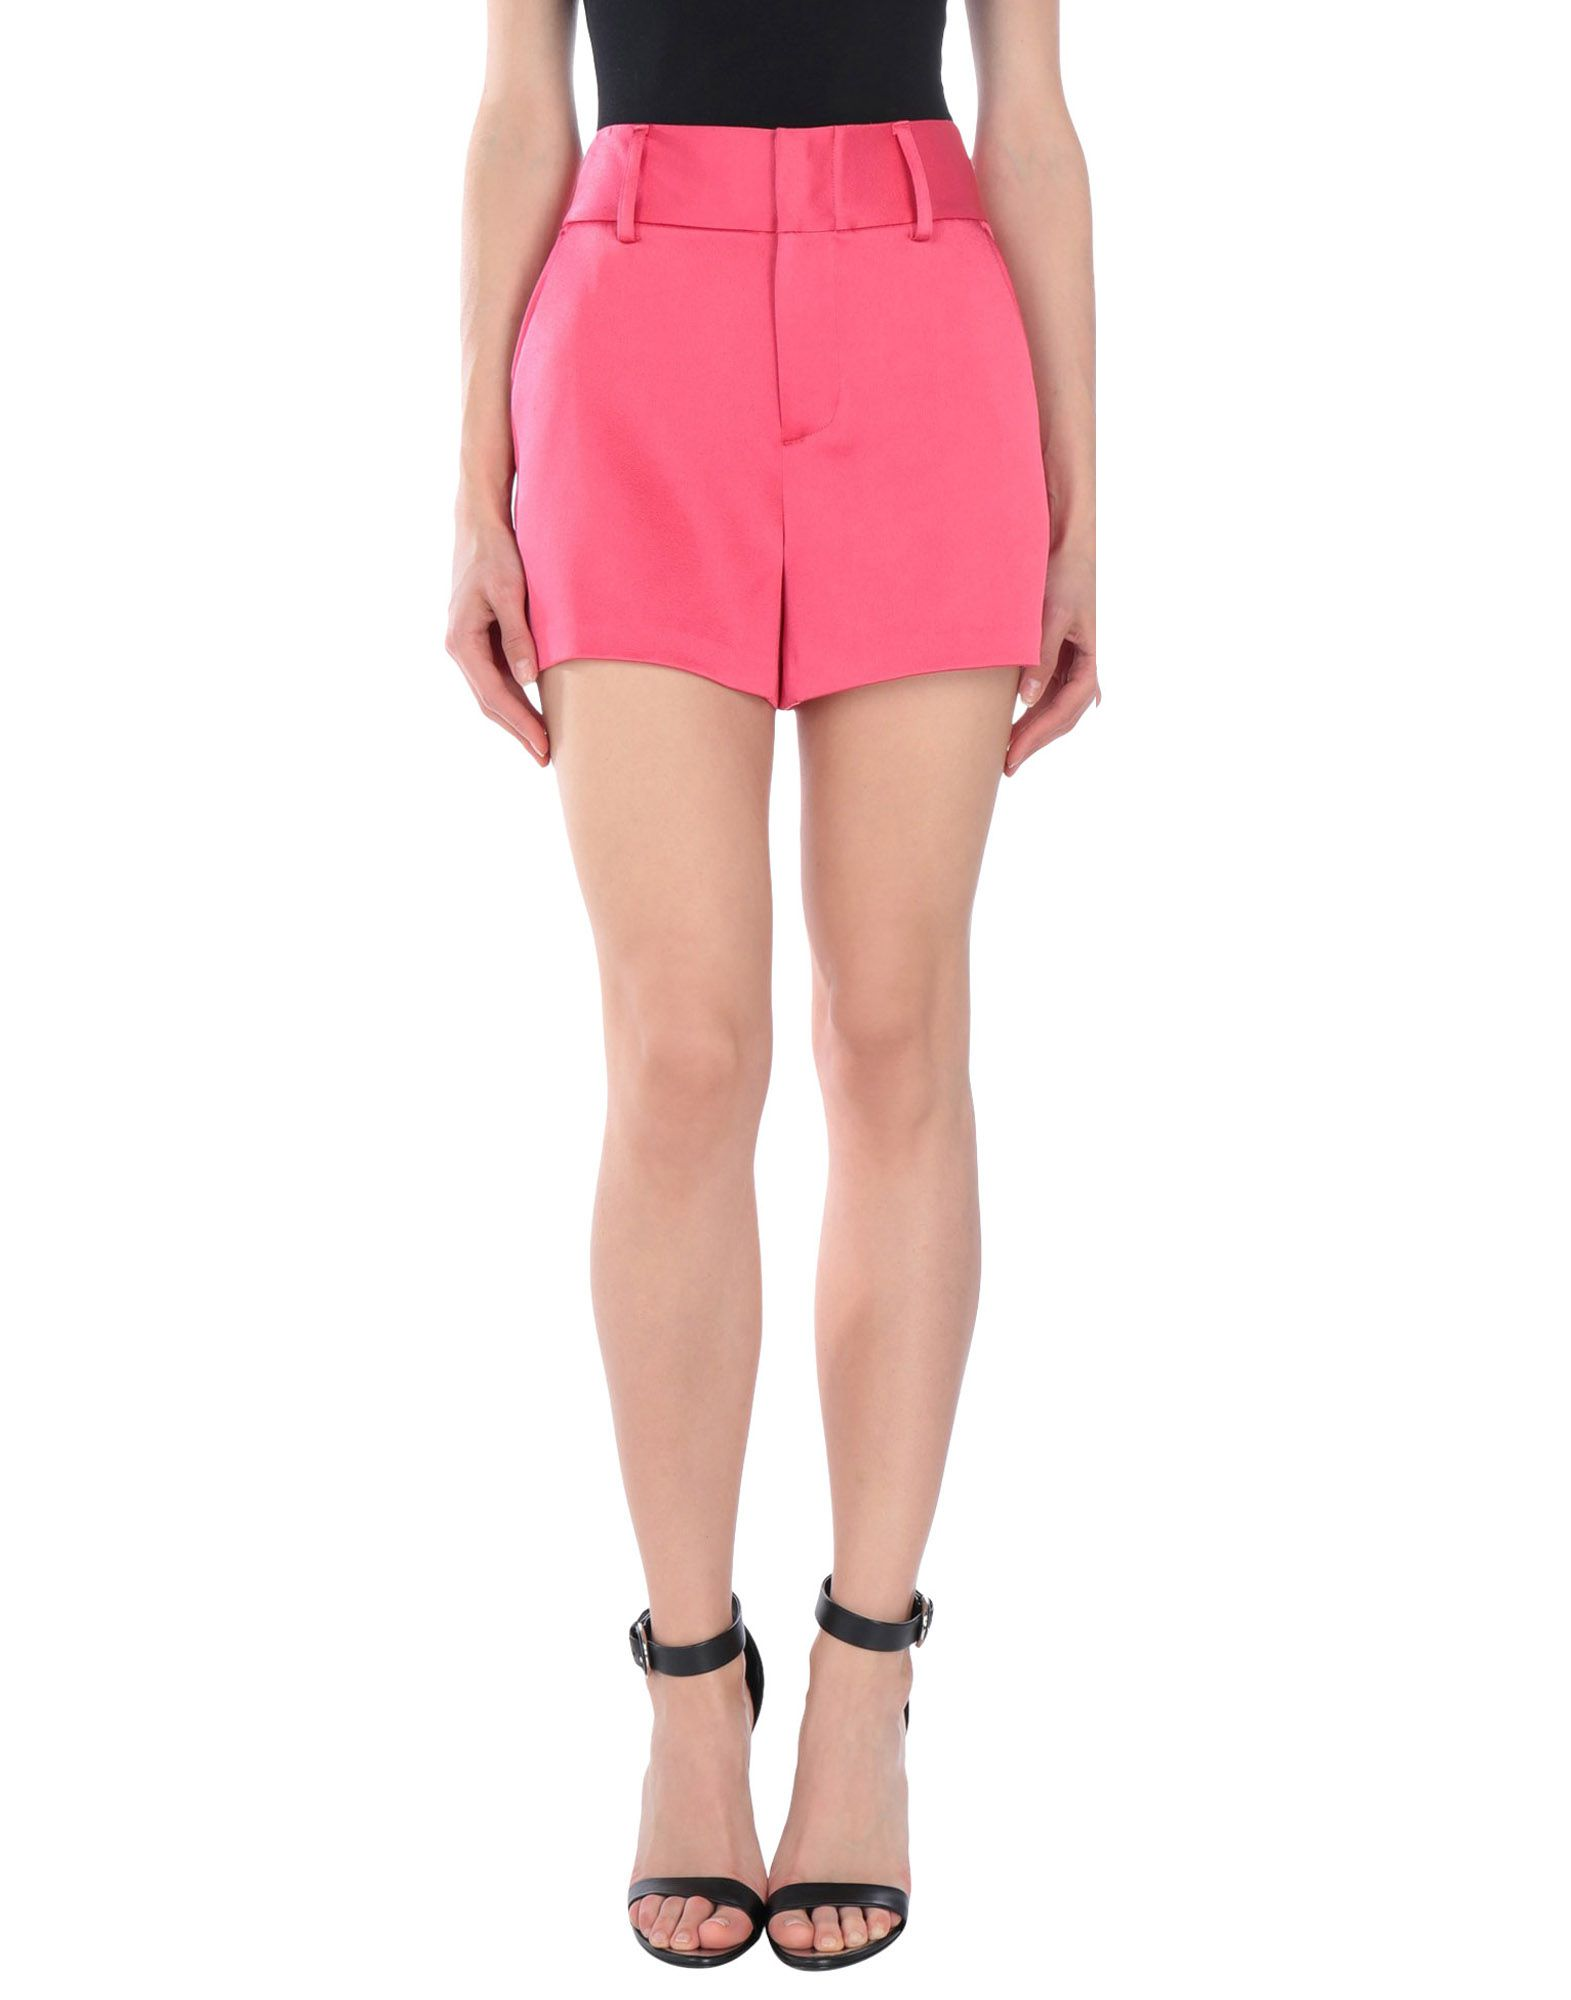 ALICE + OLIVIA Shorts. satin, no appliqués, basic solid color, mid rise, regular fit, straight leg, hook-and-bar, zip, multipockets, pants. 75% Triacetate, 25% Polyester